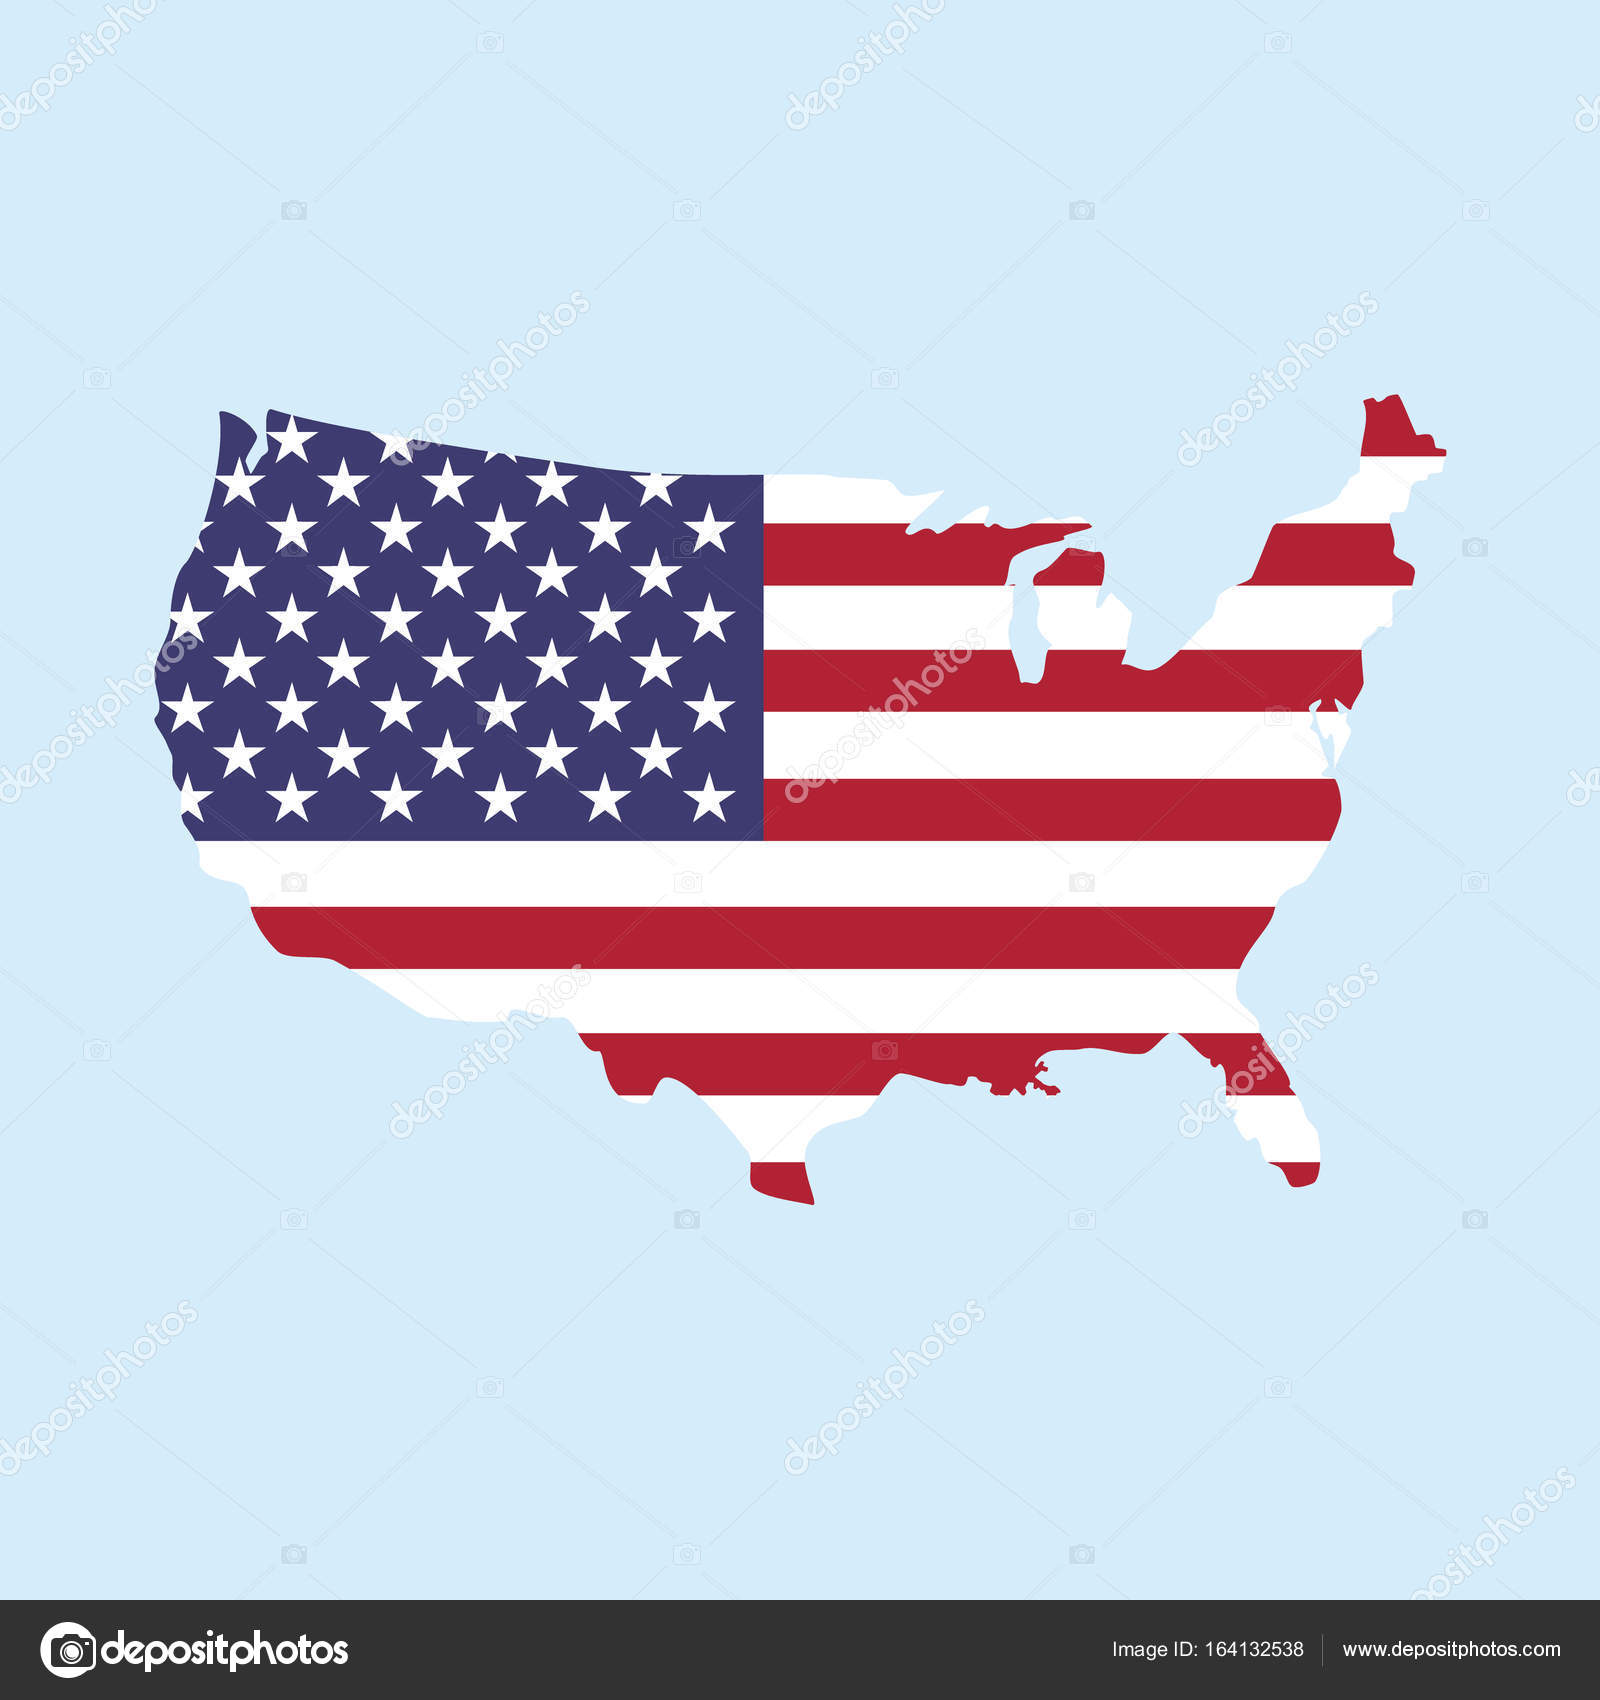 USA map icon — Stock Photo © viktorijareut #164132538